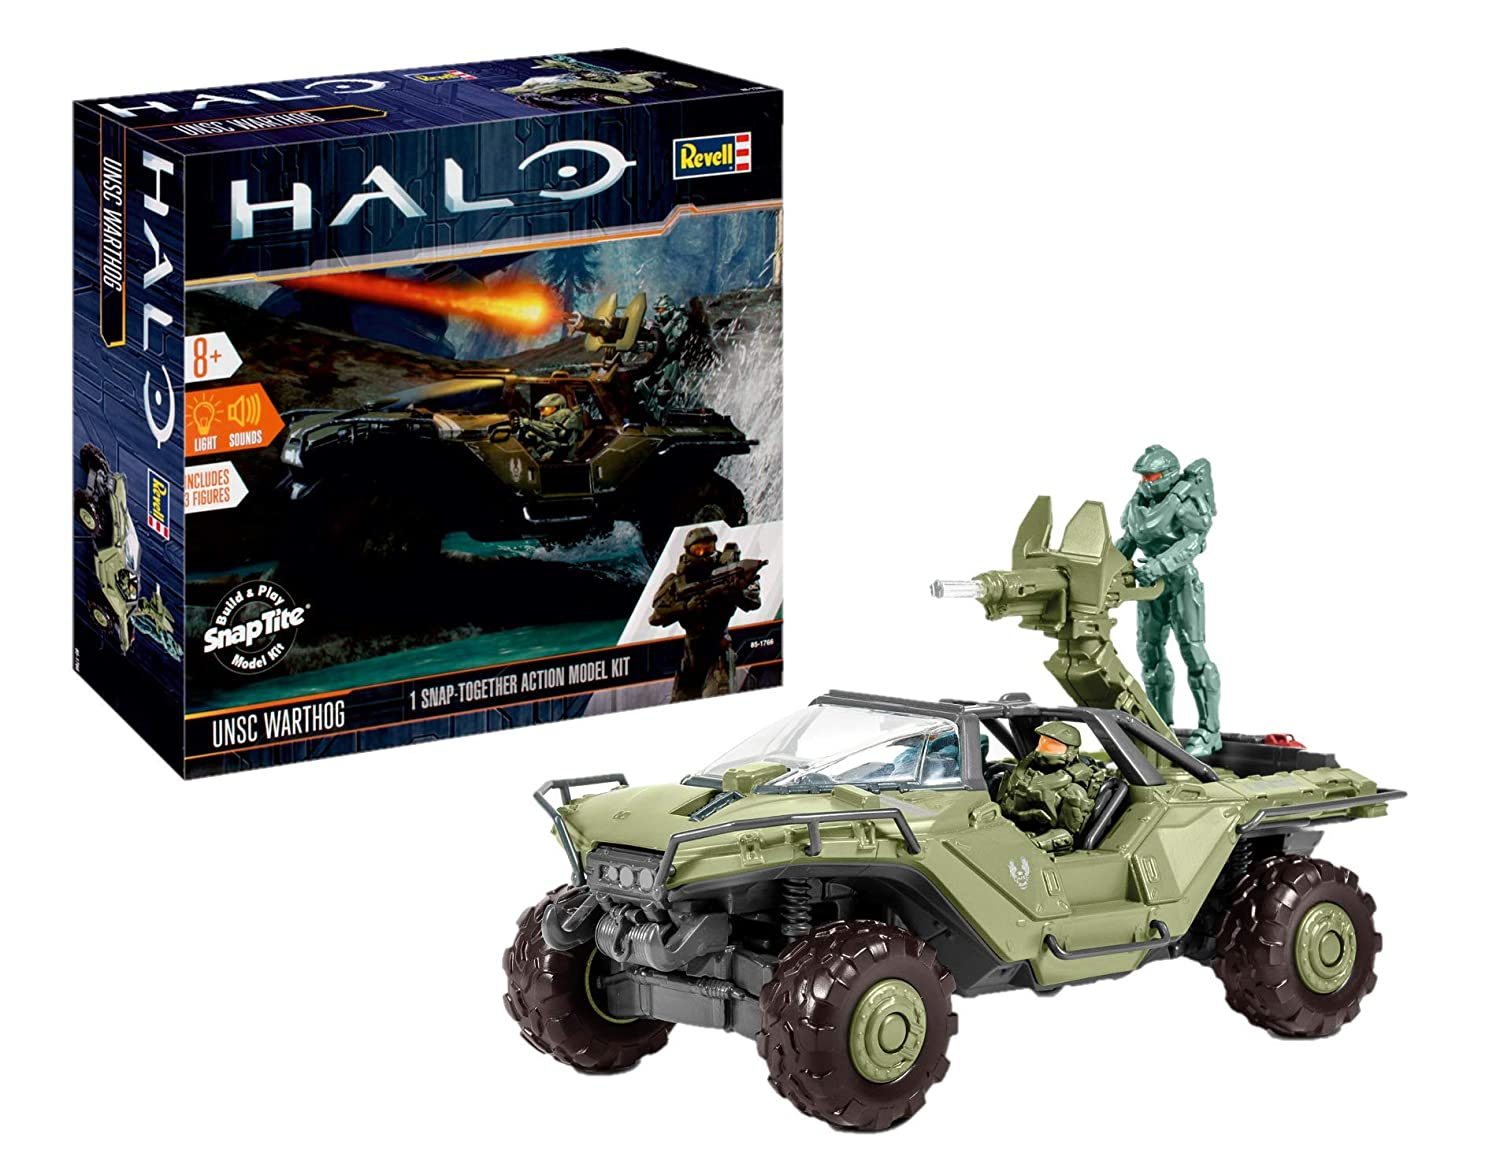 UNSC Warthog (Halo) 1:32 Scale Level 2 Revell Model Kit: Amazon com